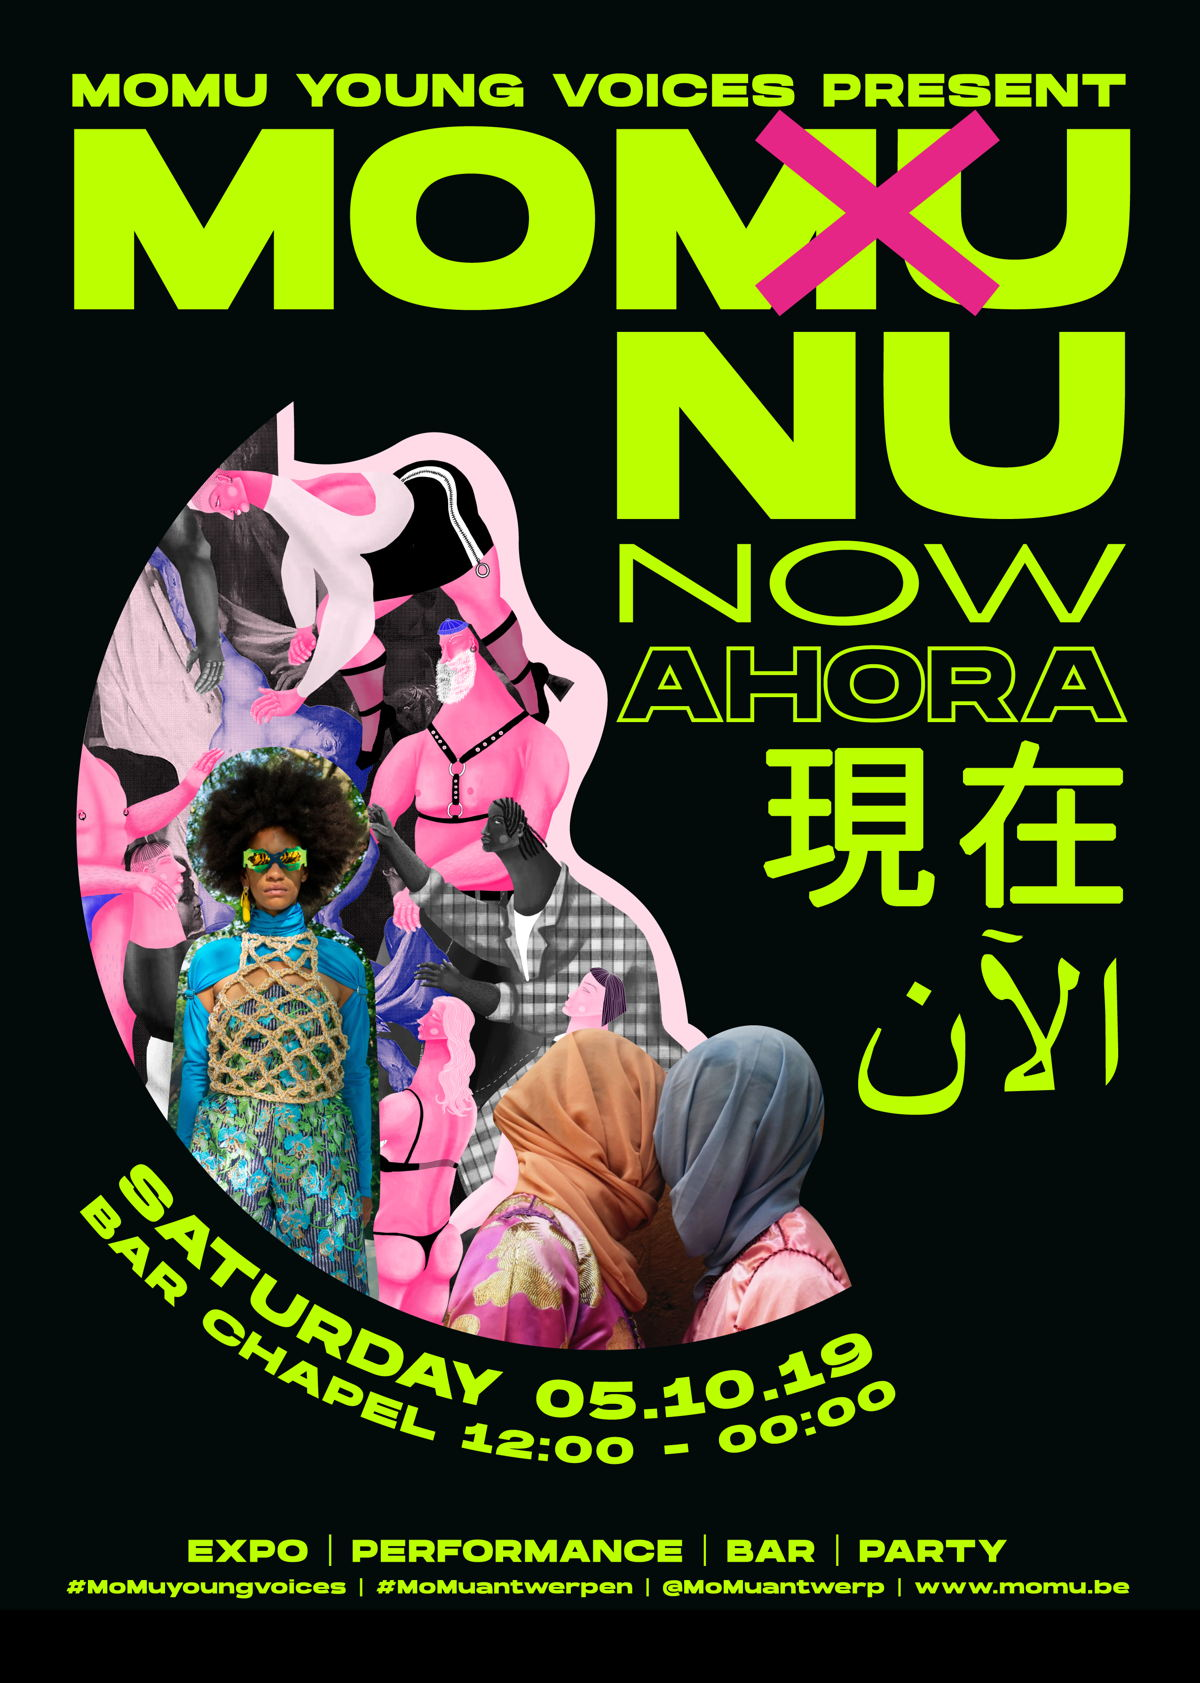 MoMu Young Voices, graphic design: Laura Helmer